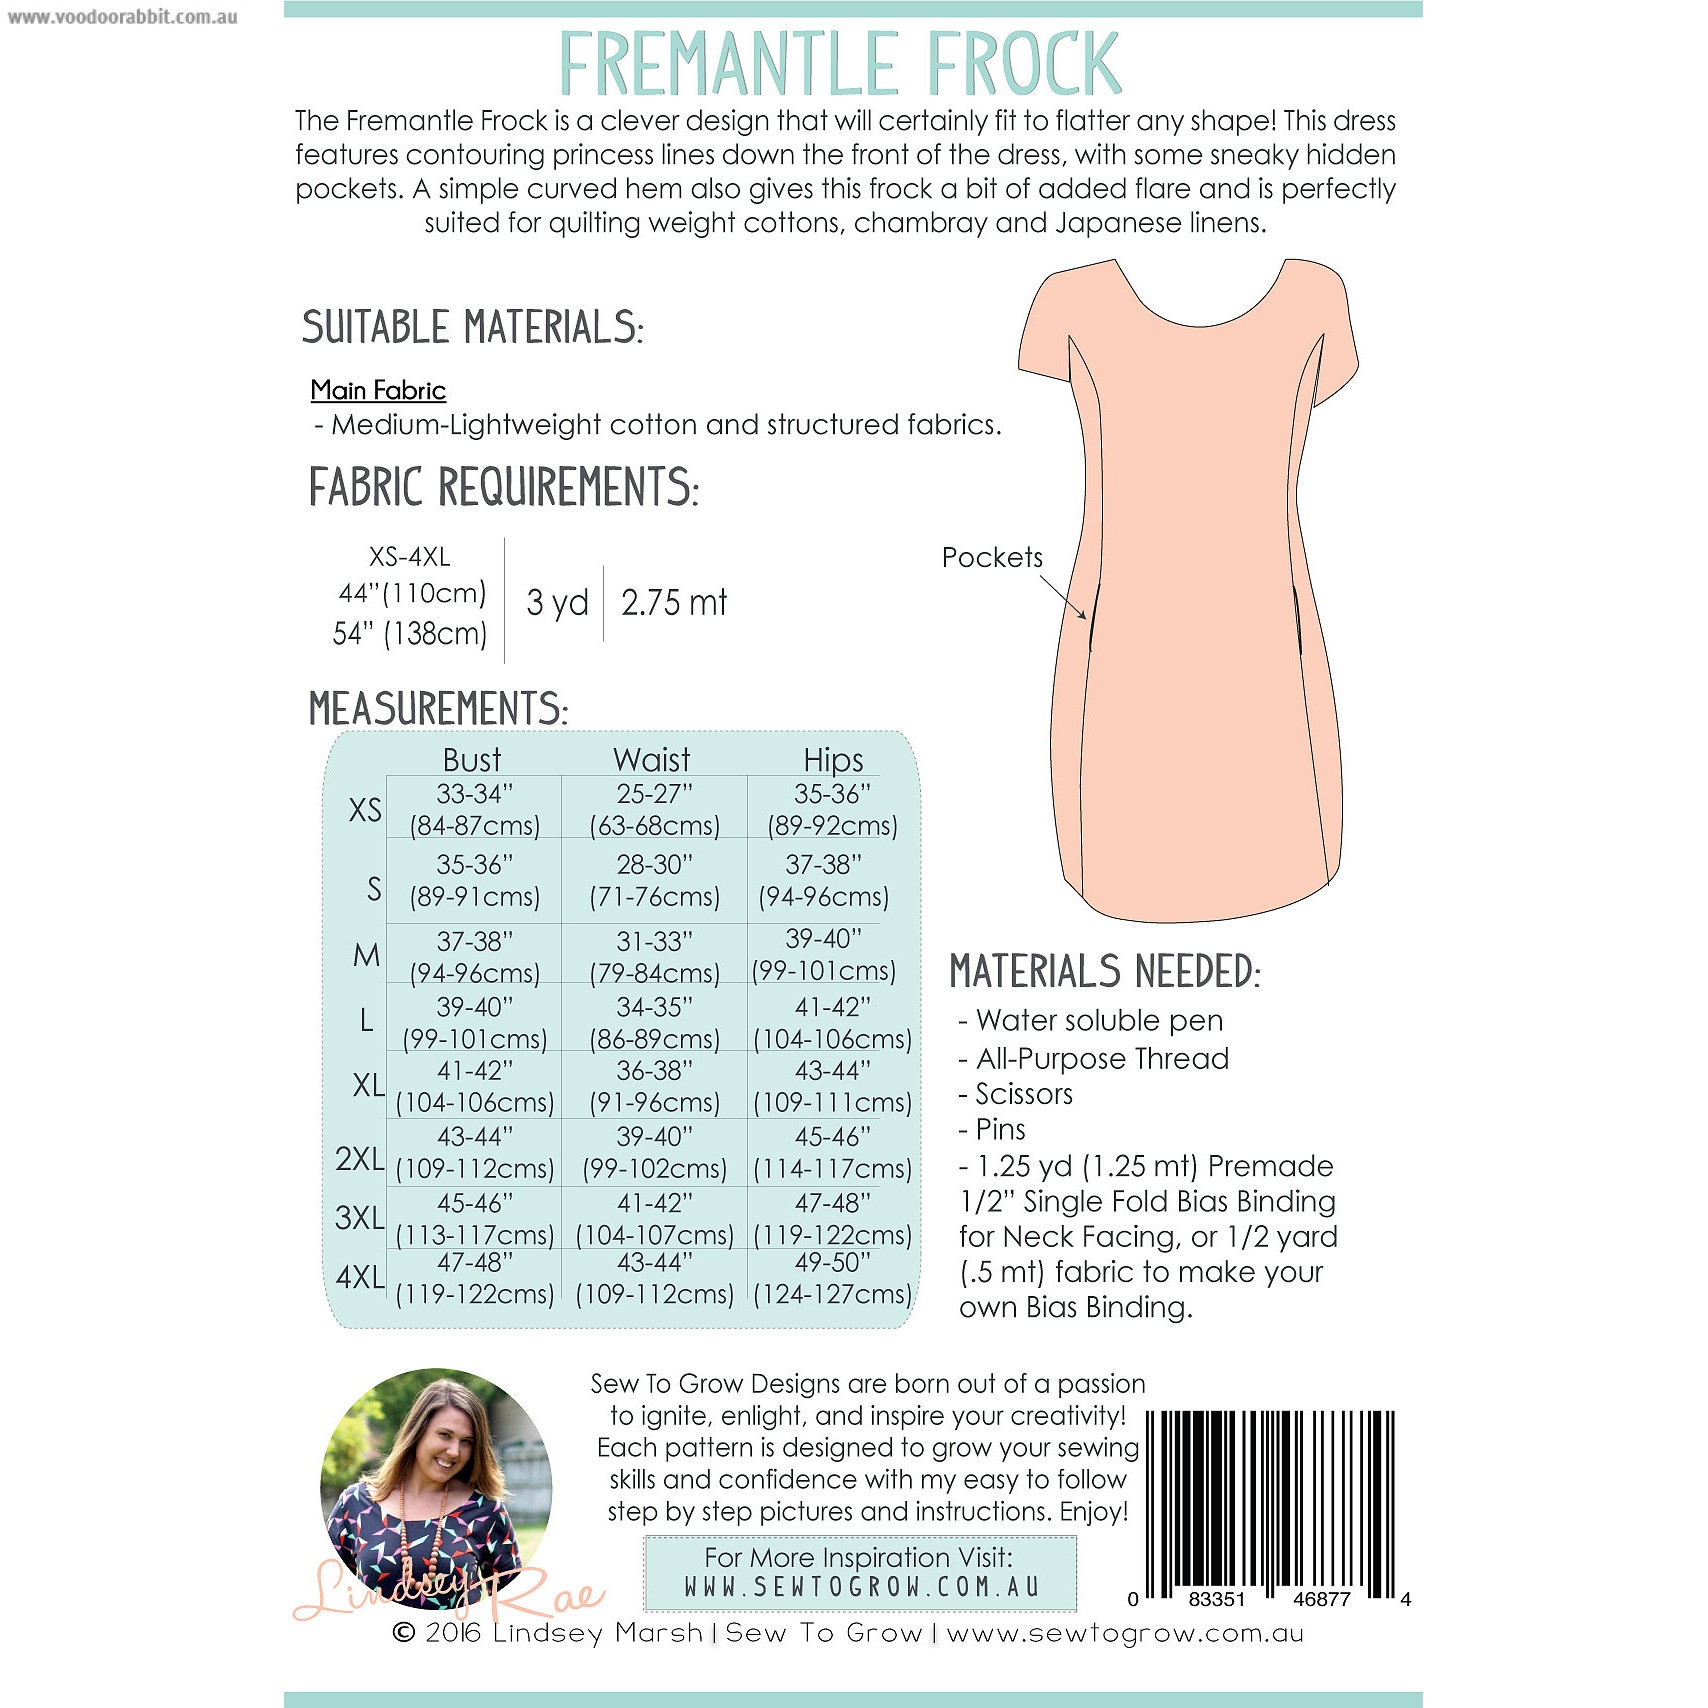 Fremantle frock dress sewing pattern by sew to grow alternative fremantle frock dress sewing pattern by sew to grow alternative cool funky online fabric shop bag hardware sewing patterns brisbane australia jeuxipadfo Images